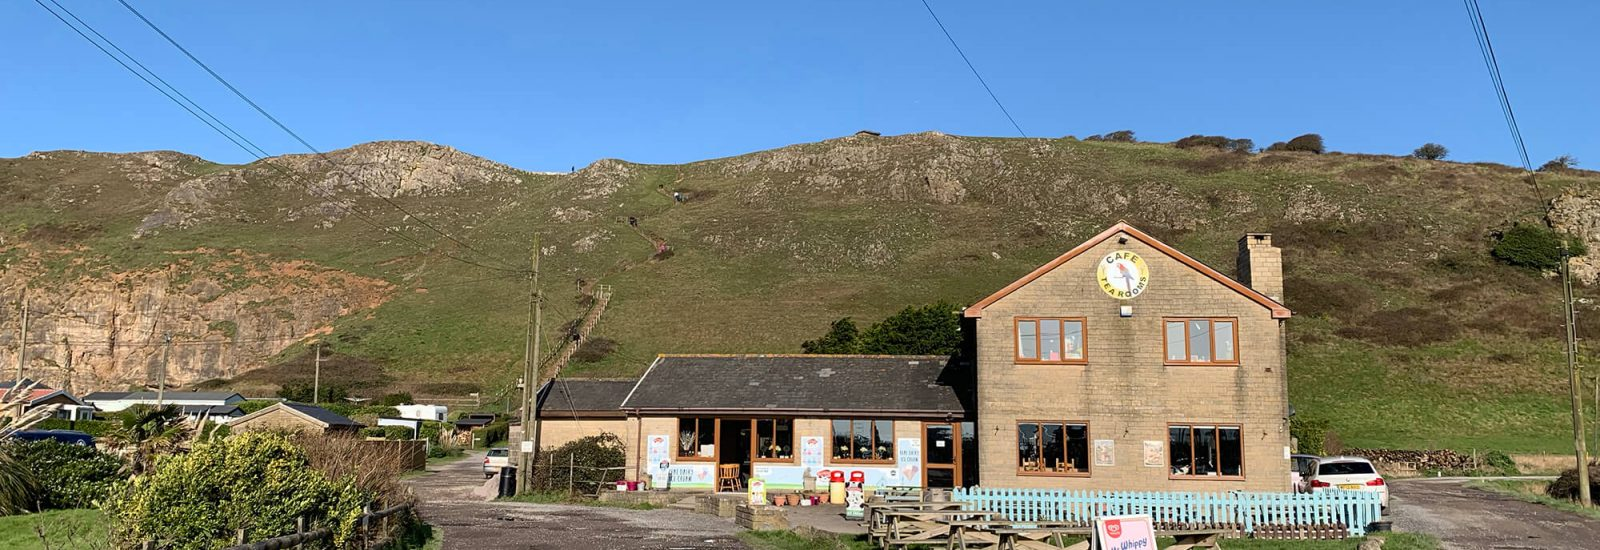 Image of Brean Down Cafe